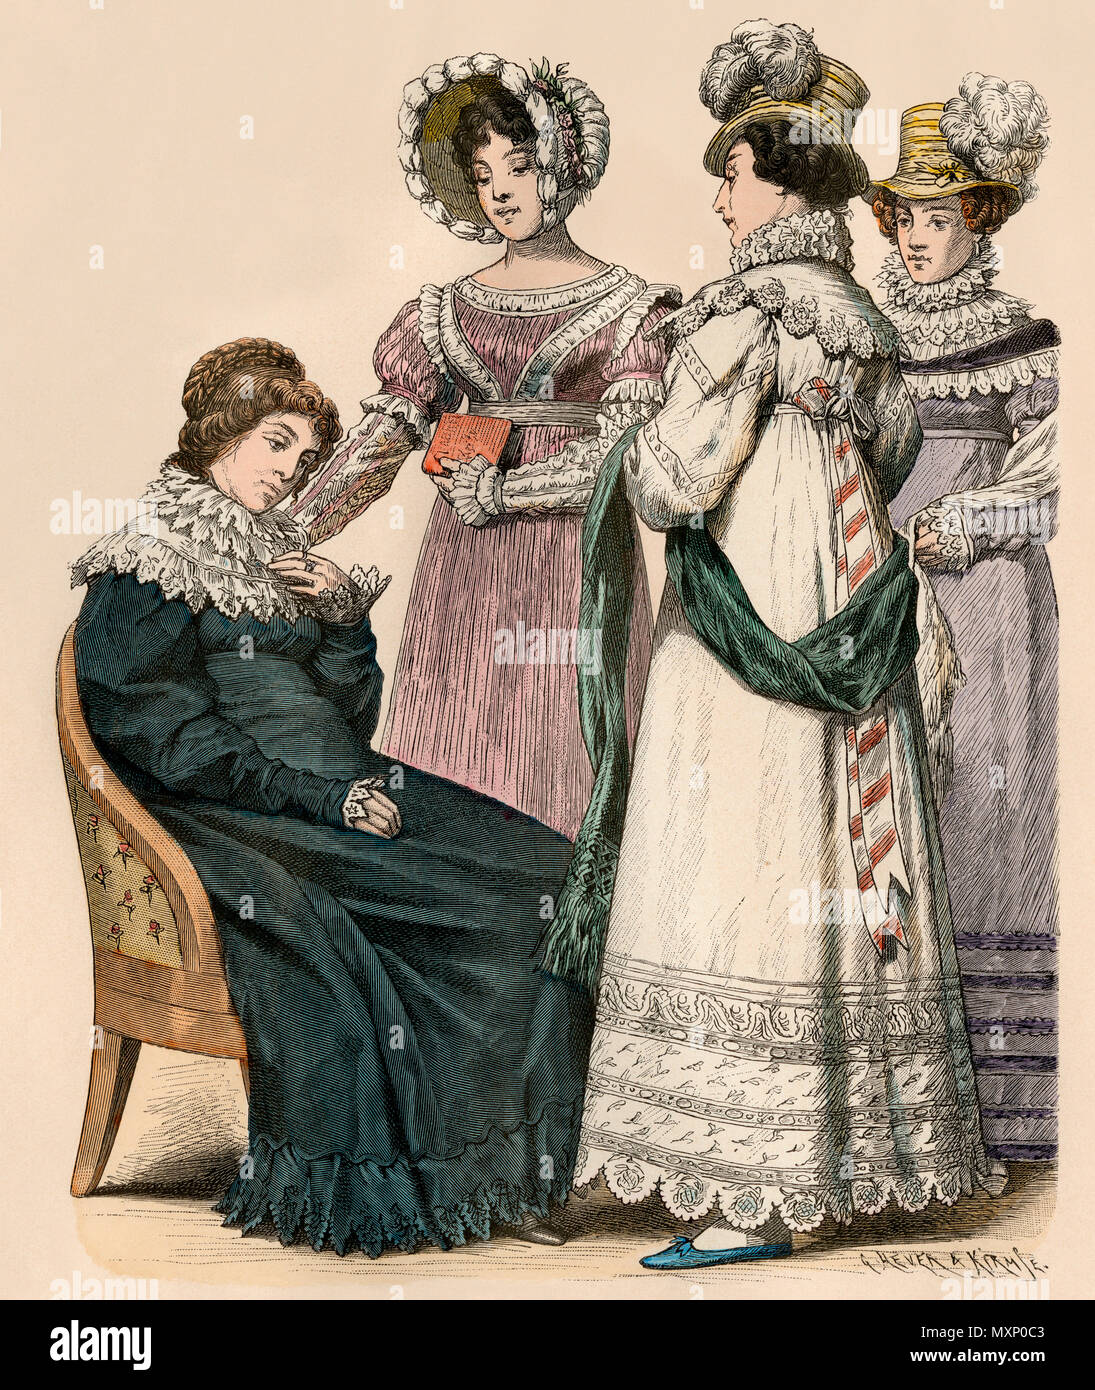 European ladies in the fashions of 1819. Hand-colored print - Stock Image